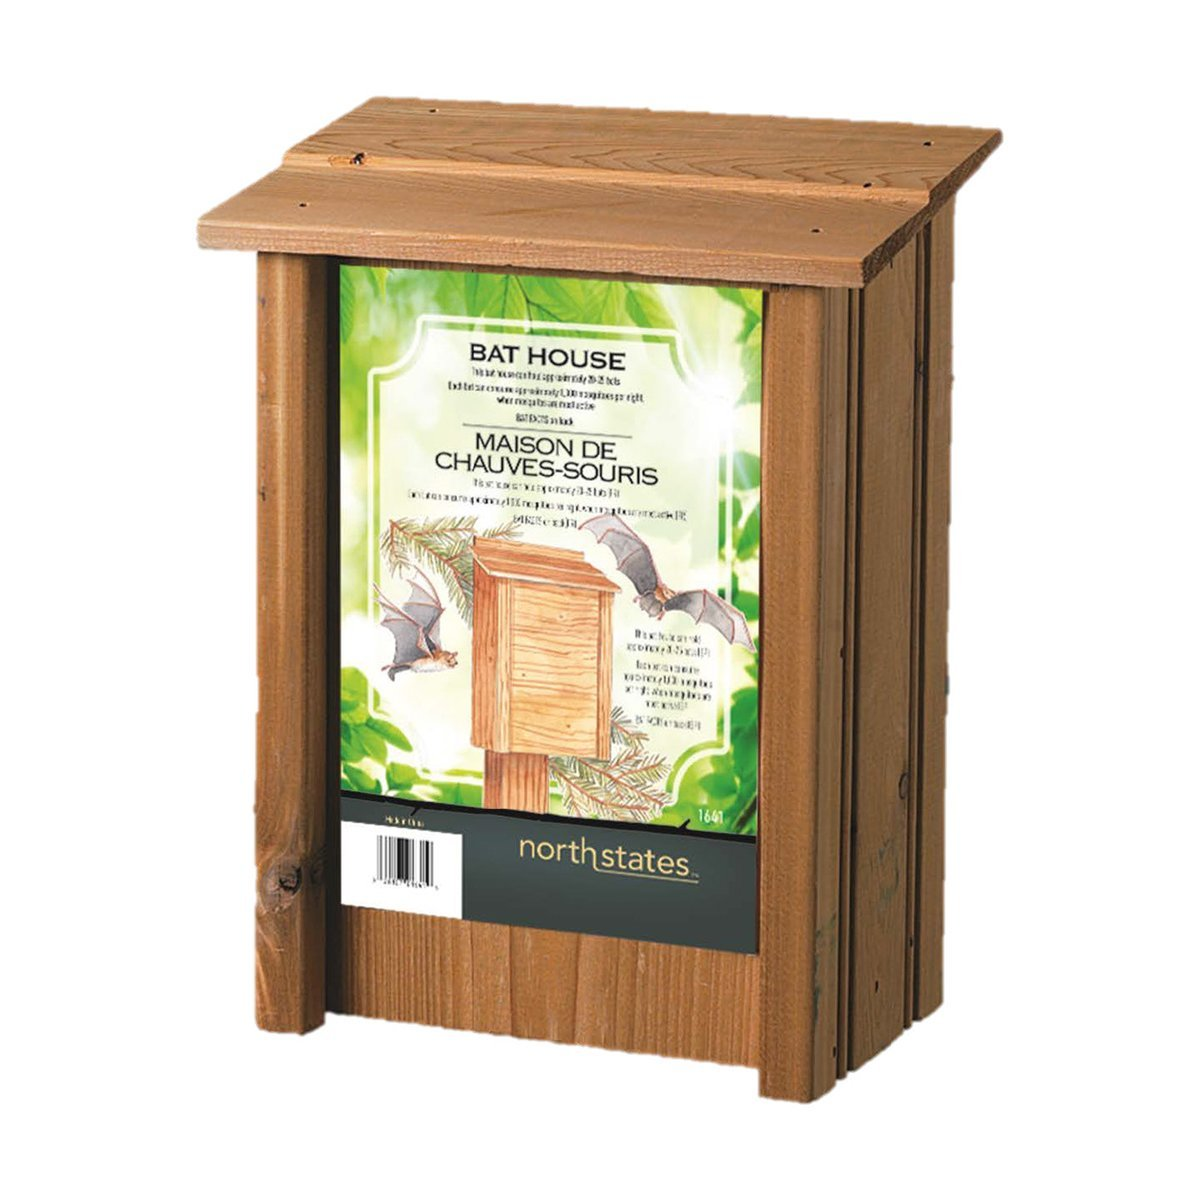 North States 1641 8-Inch by 4-3/4-Inch by 15-Inch Bat House by North States